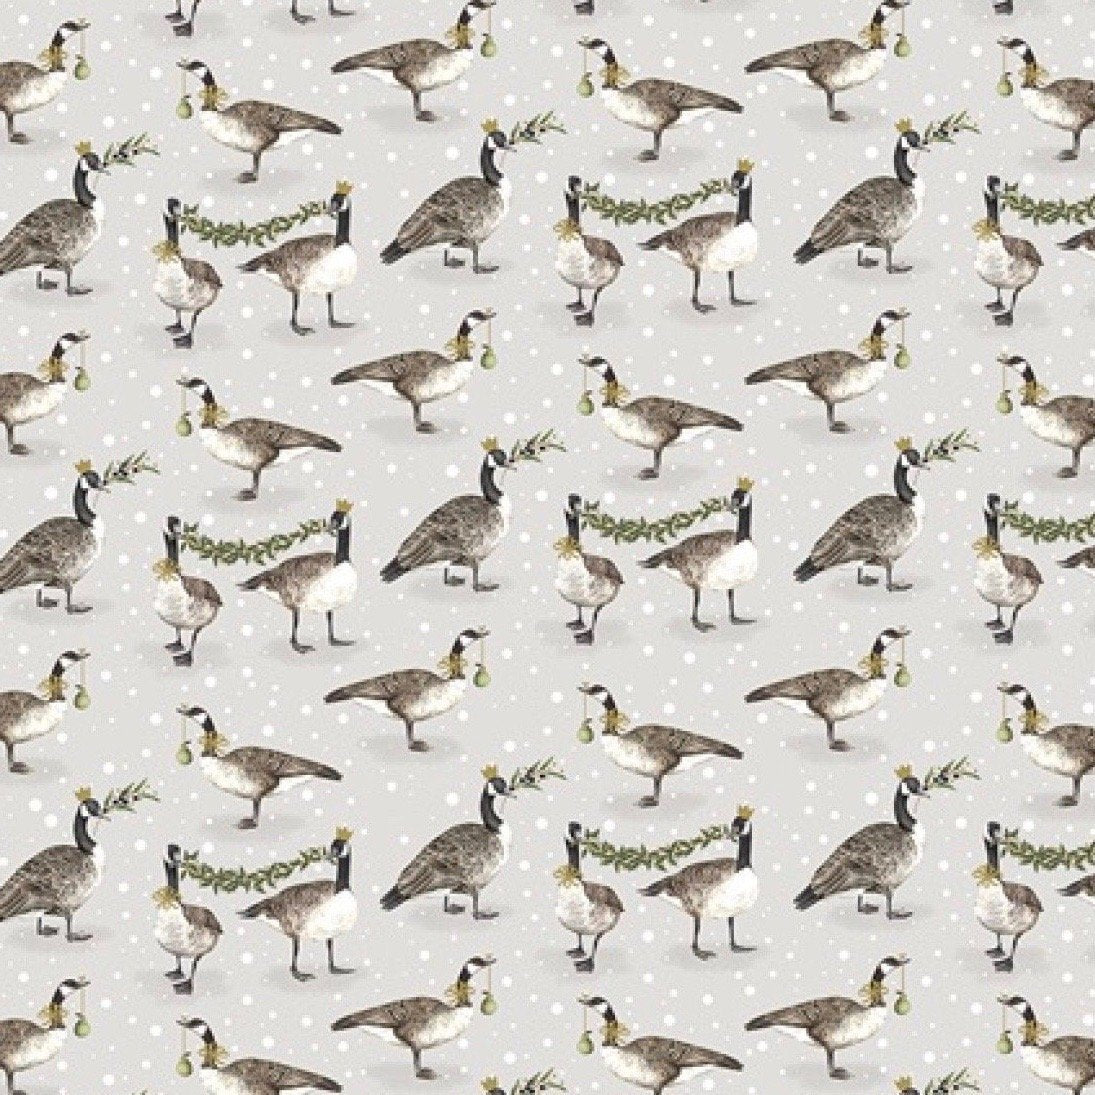 Canada Geese Christmas Sheet Wrapping Paper | Putti Christmas Celebrations